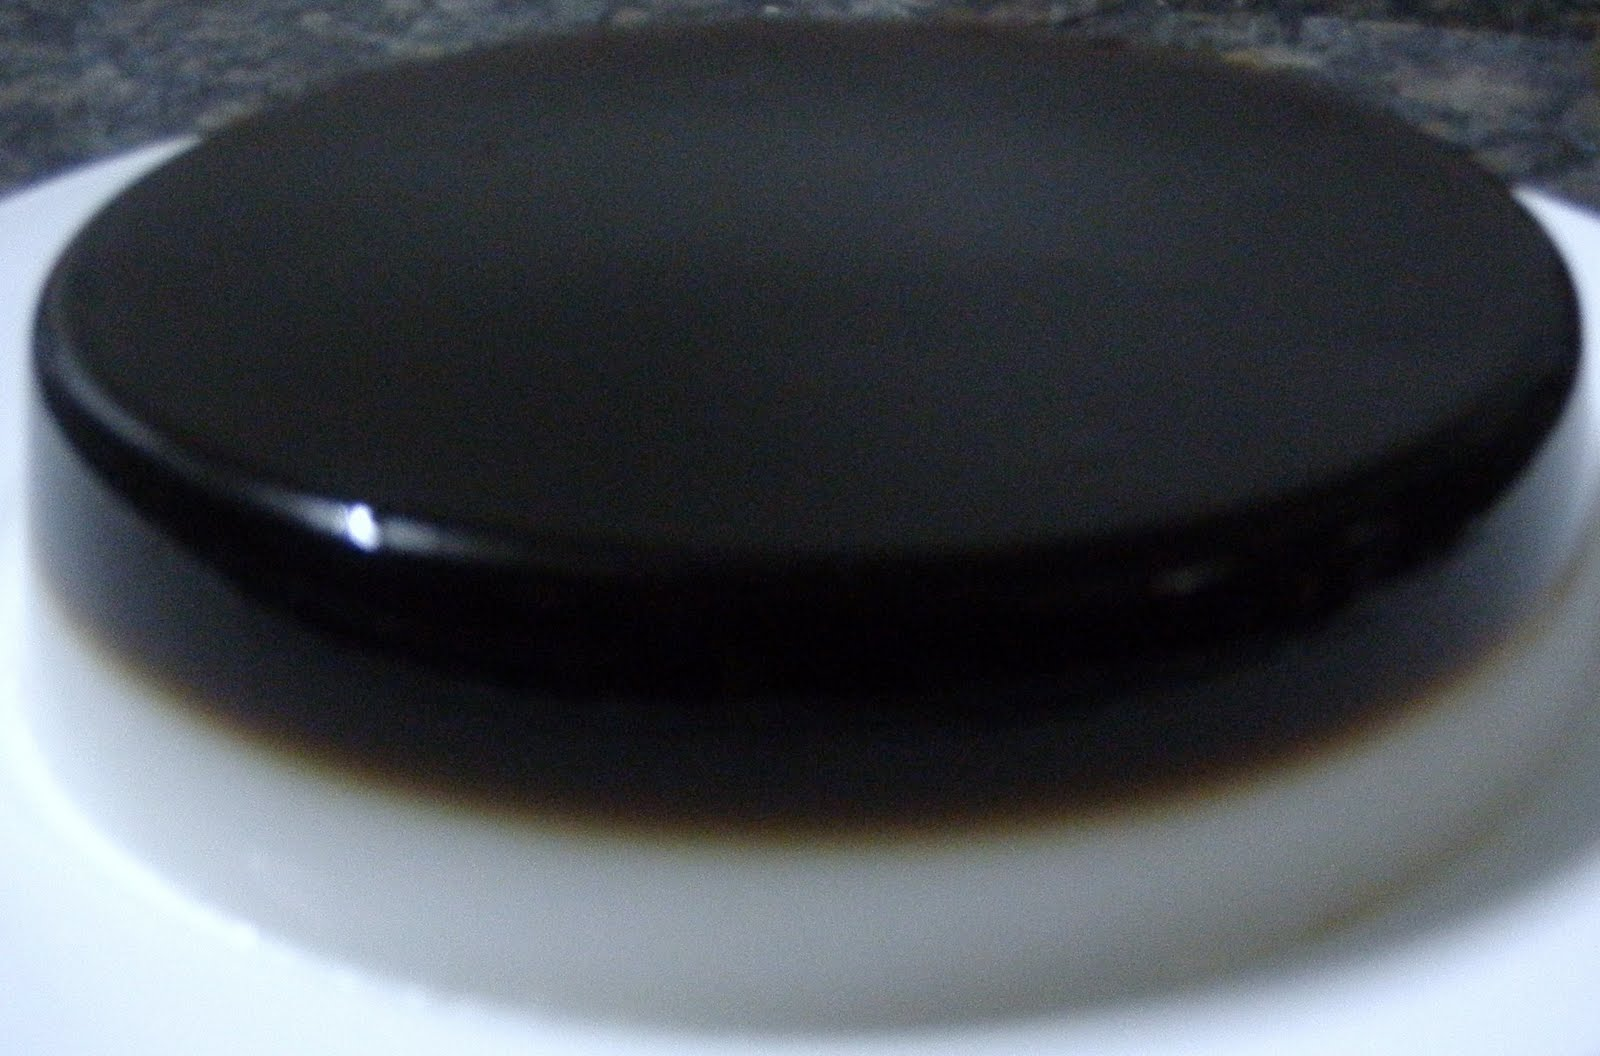 Dzi cooking: Day Of Agar & Pudding